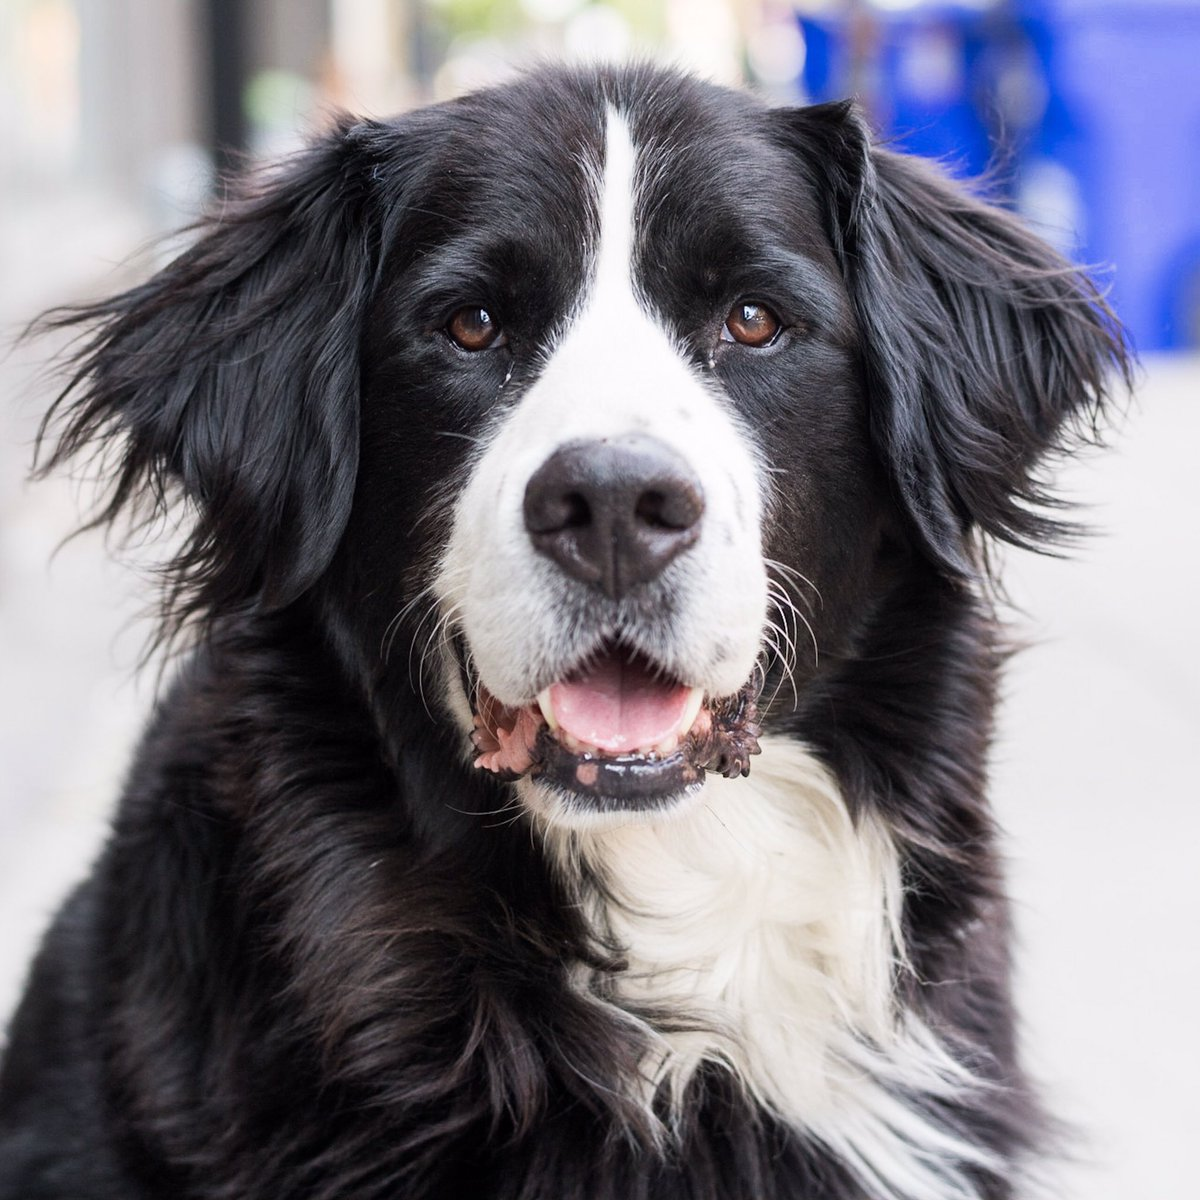 The Dogist On Twitter Crunch Bernese Mountain Dog